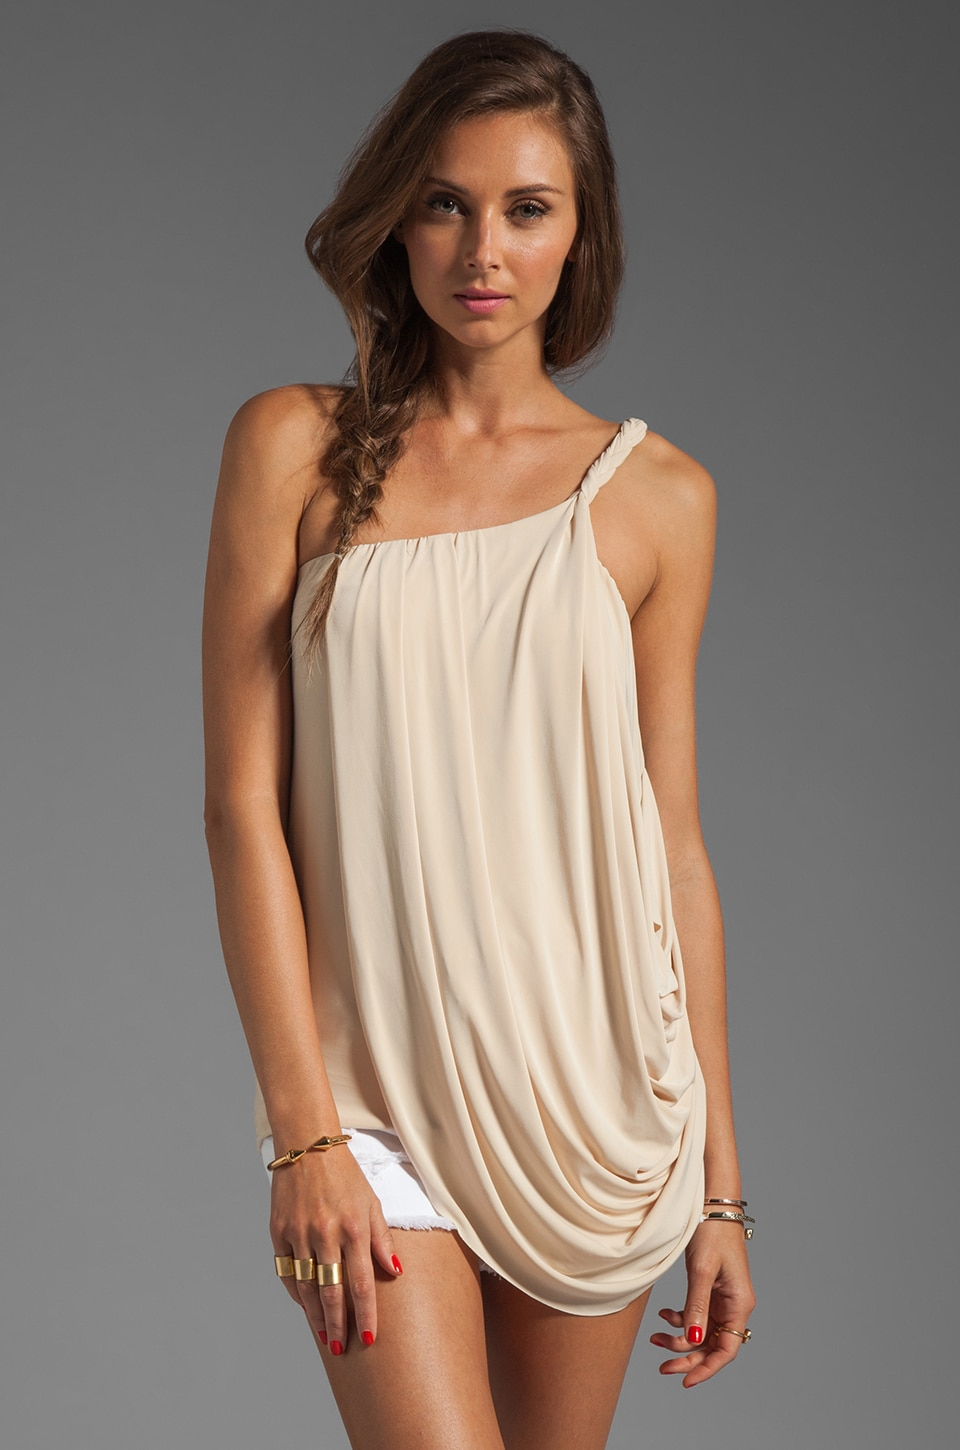 T-Bags LosAngeles One Shoulder Drape Tank in Cream